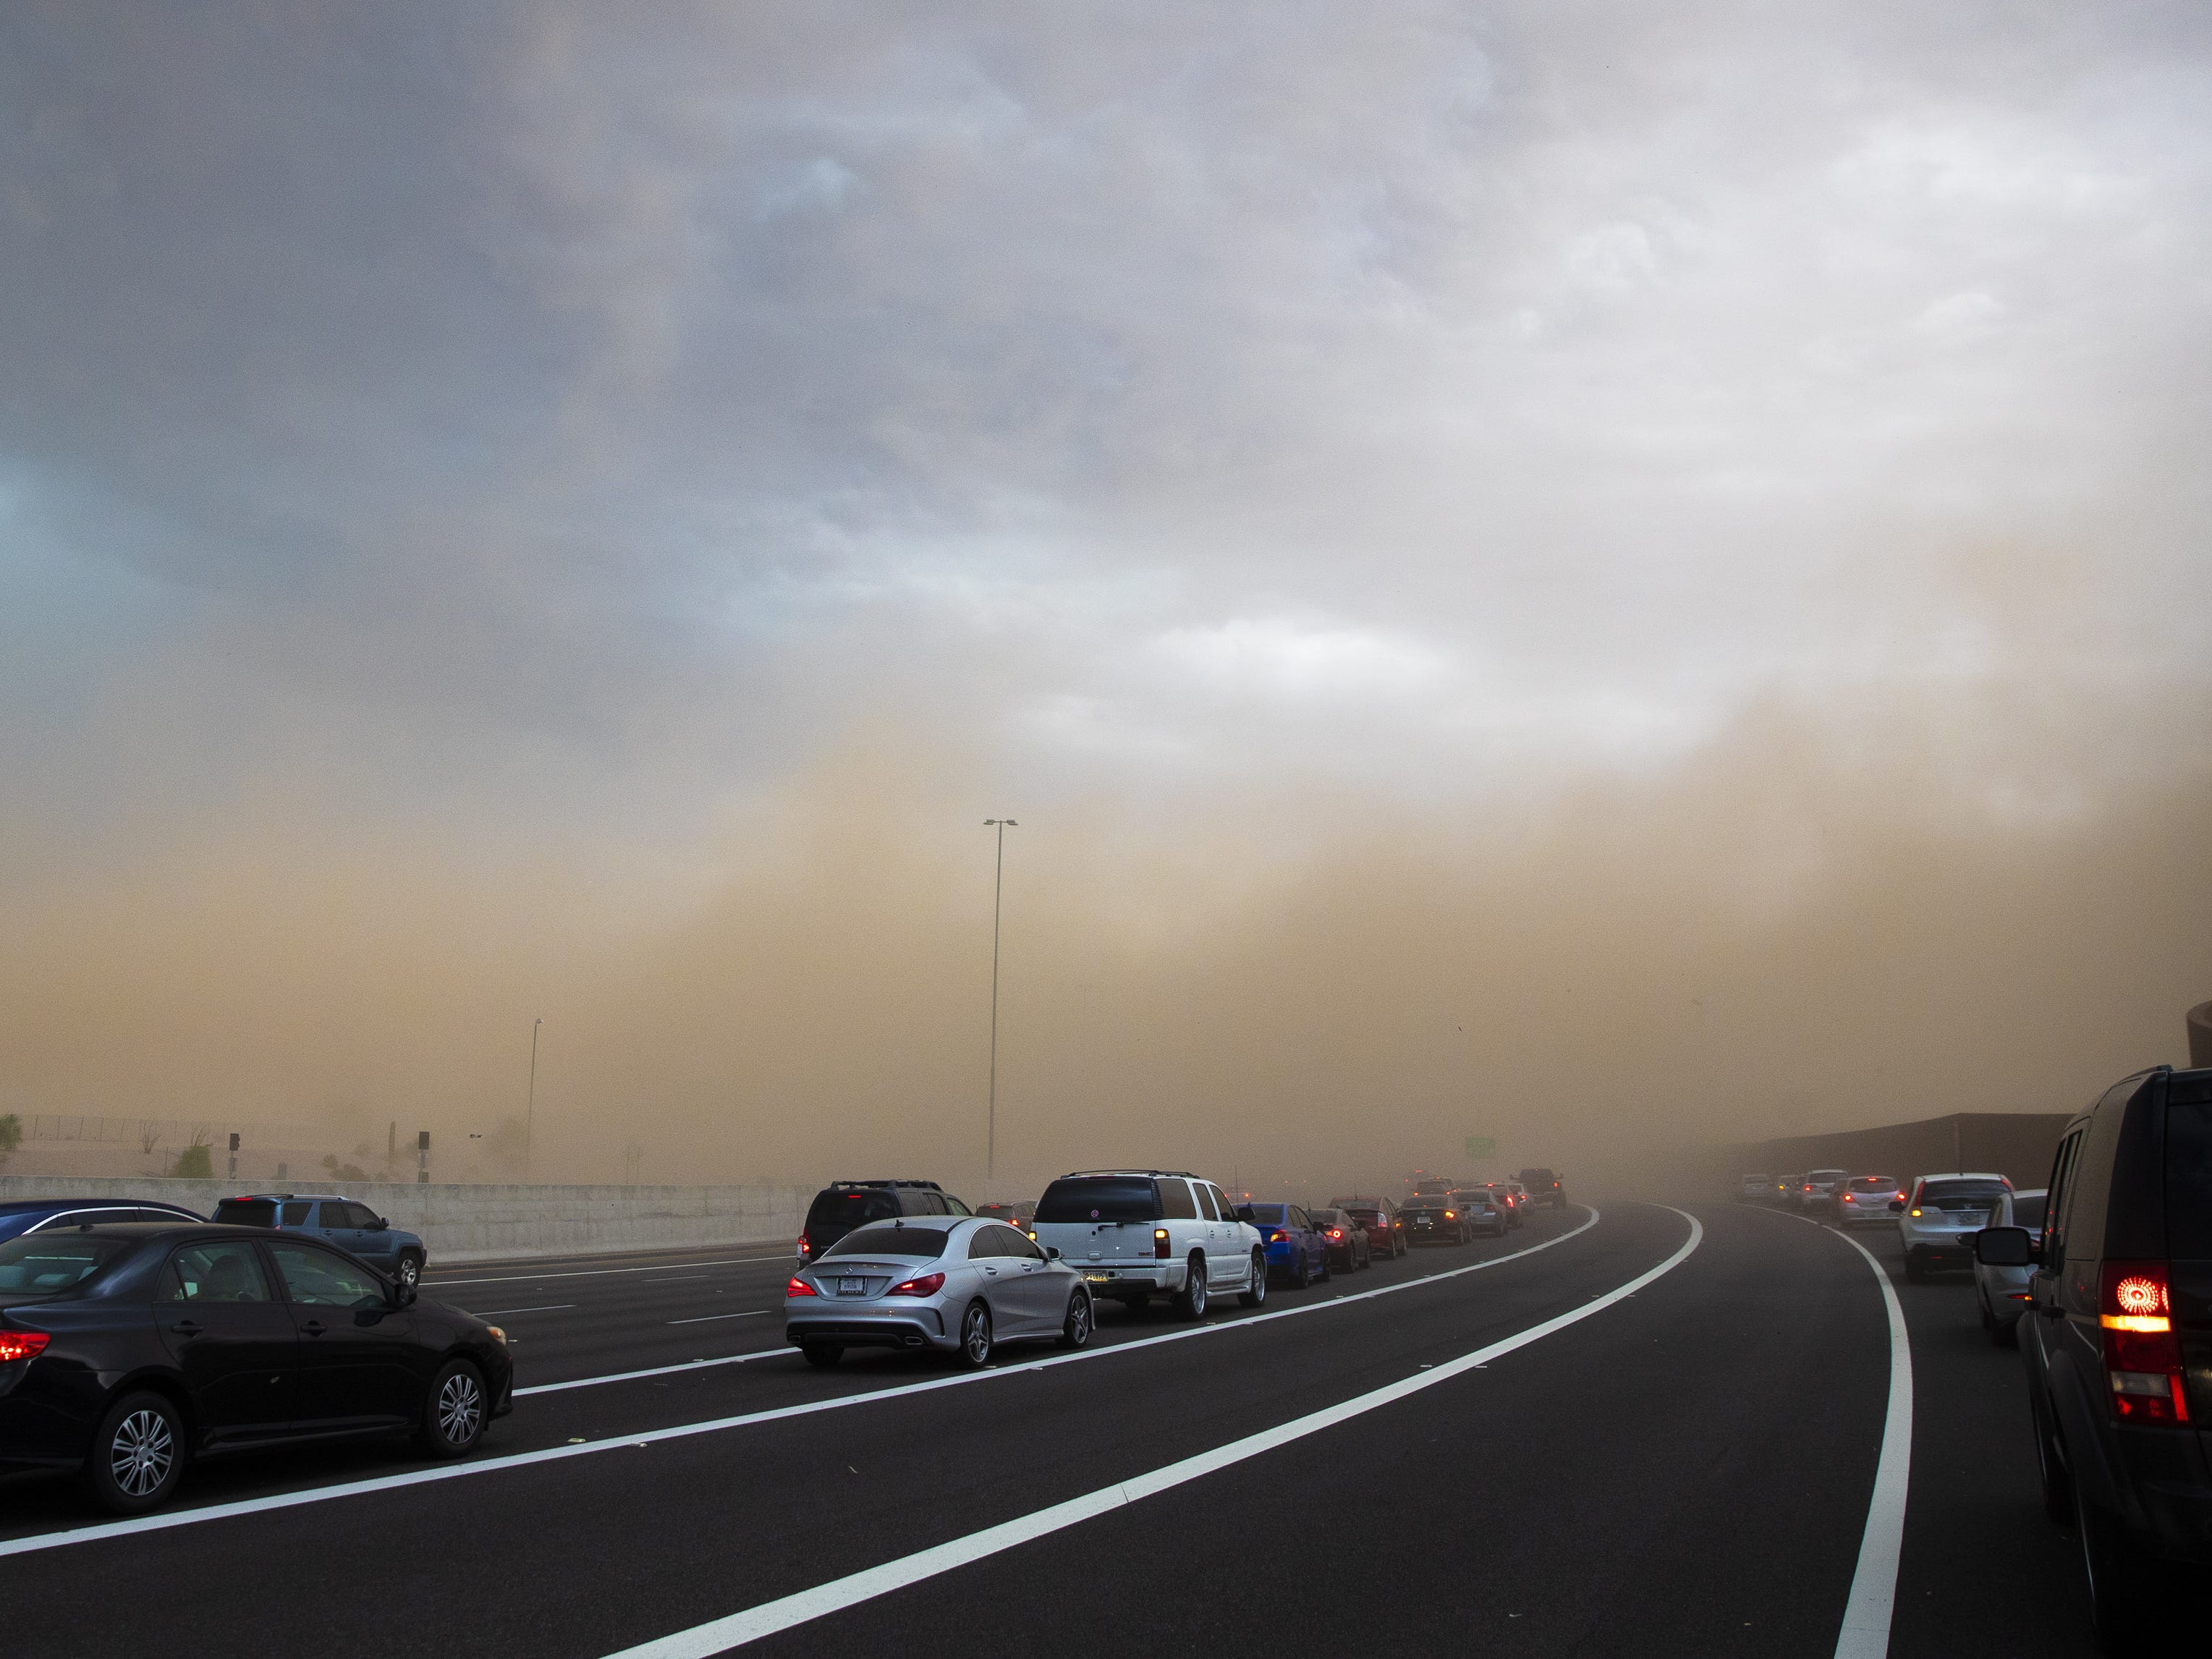 Blowing dust stops southbound traffic on the Loop 101 near E. Via Linda in Scottsdale, Ariz. during a monsoon storm August 12, 2018.